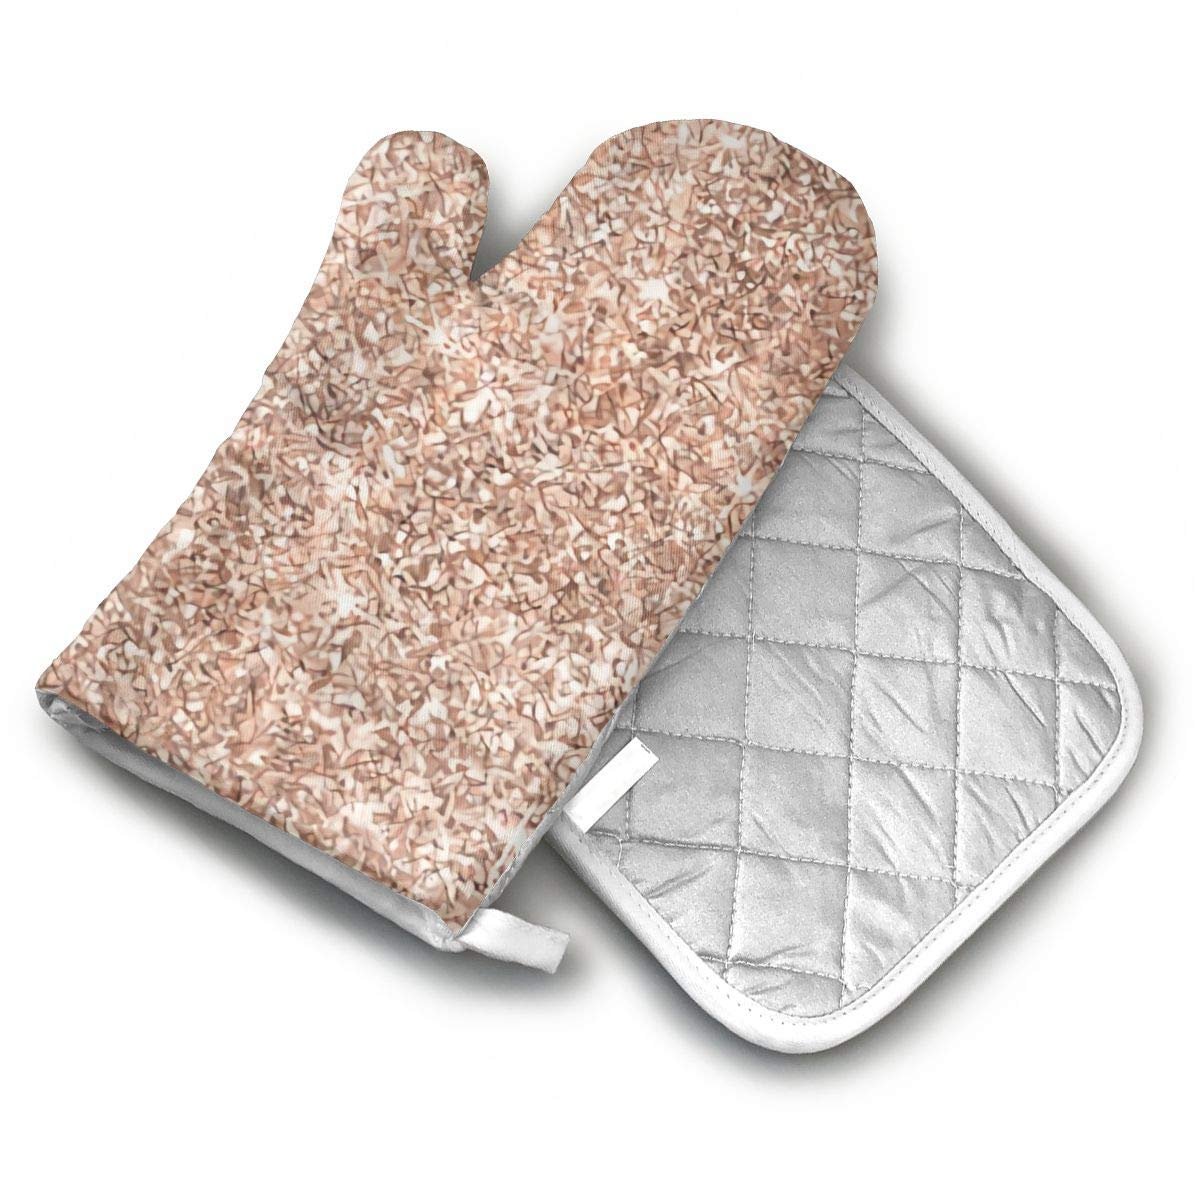 ECEED DAI Chic Rose Gold Glitter Pattern Oven Mitts with Potholders,Oven Gloves,Insulated Quilted Cotton Potholders